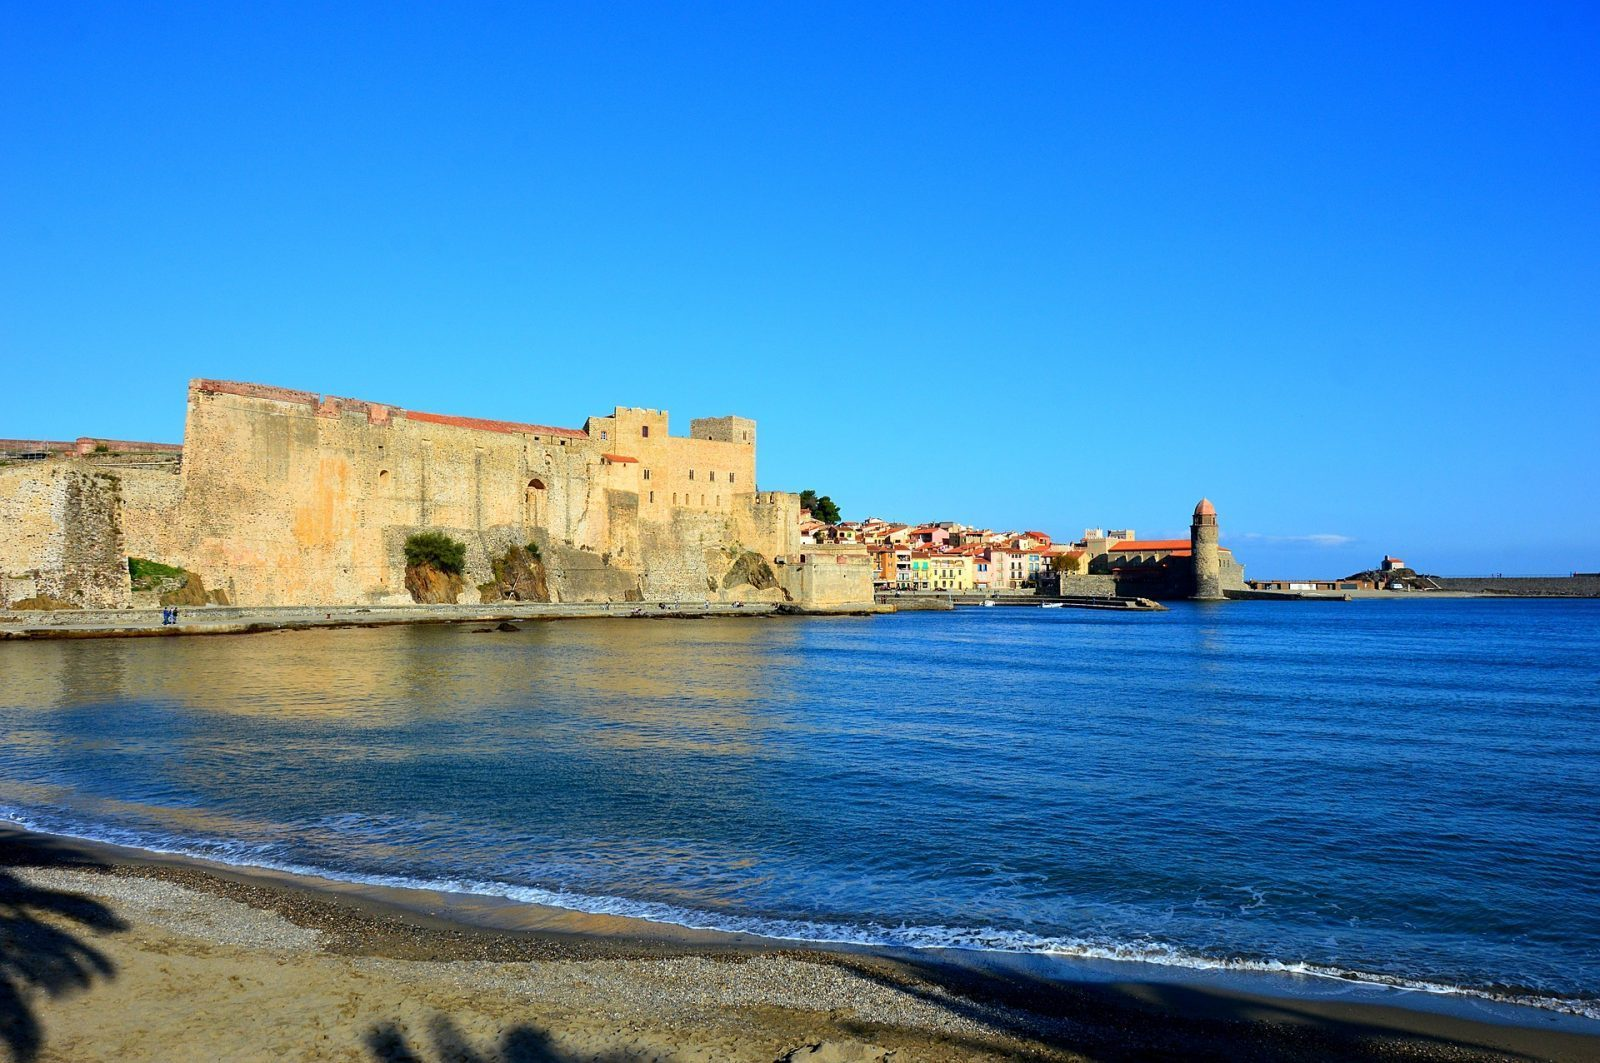 Collioure | Collioure on the Mediterranean coast of France is ever-popular with artists. The Modern Art Museum includes paintings by Henri Matisse.